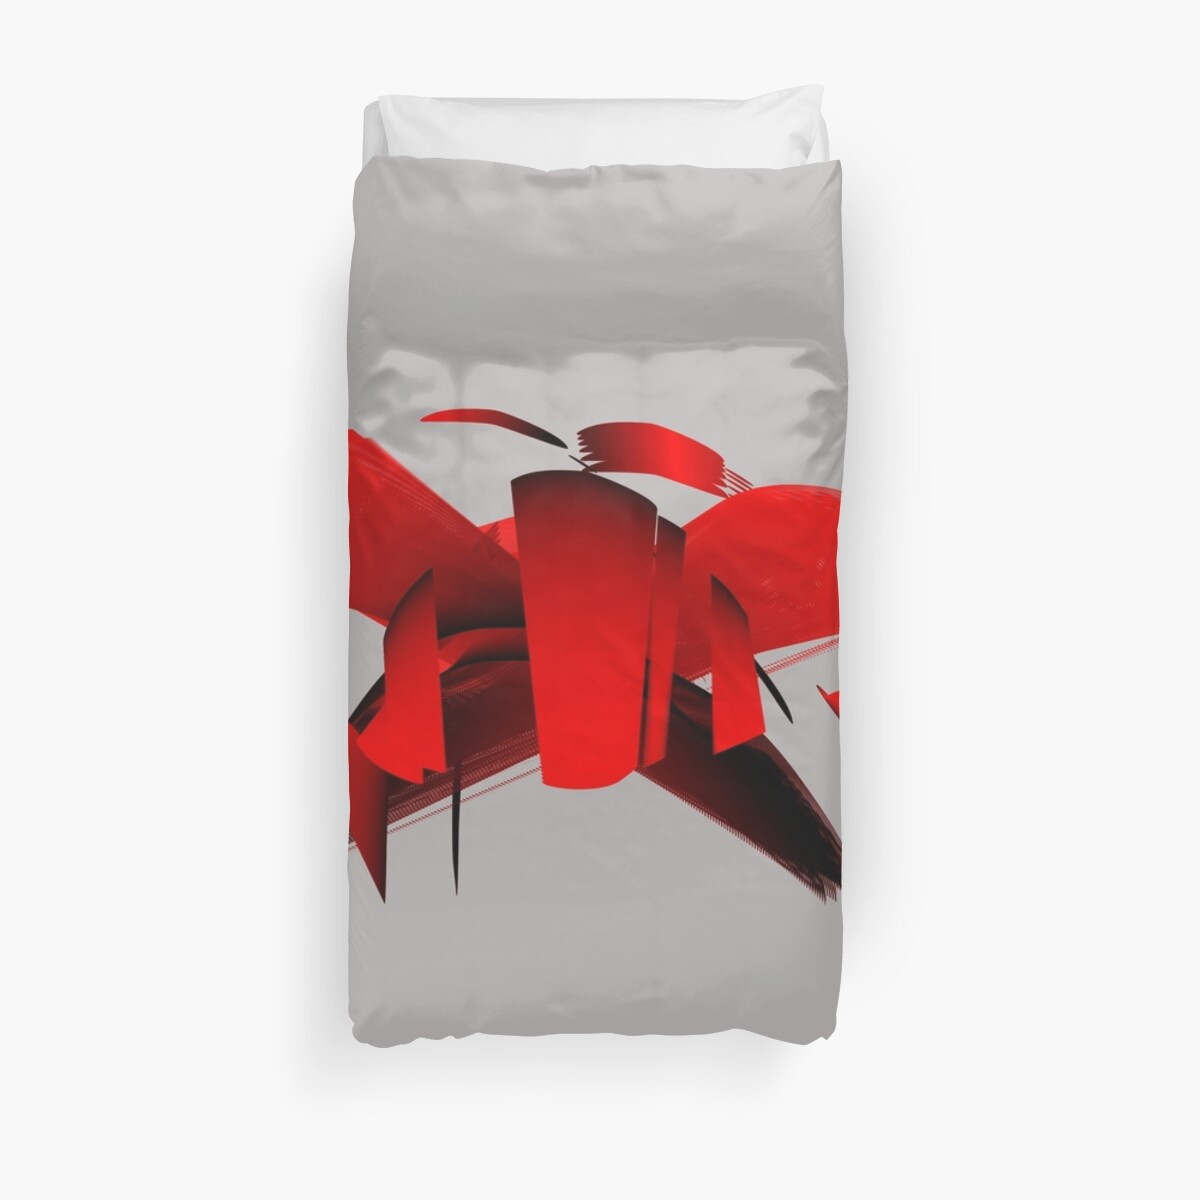 Graphic in Red and Black, flying thing. by Robert Elfferich